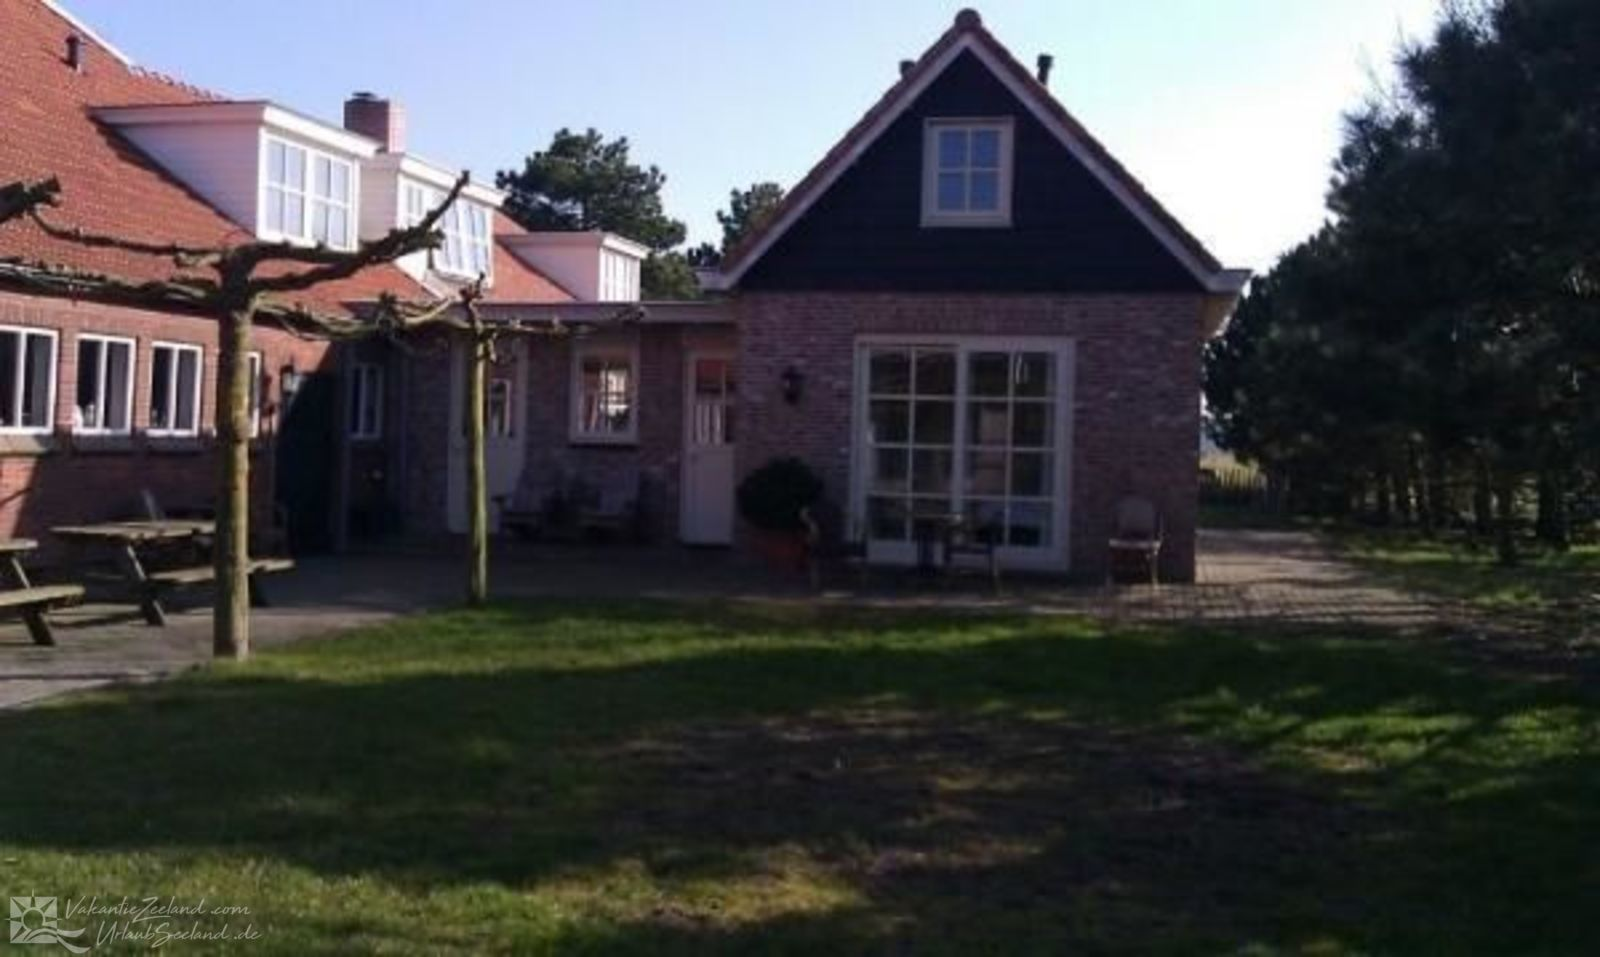 VZ213 Group accommodation Renesse